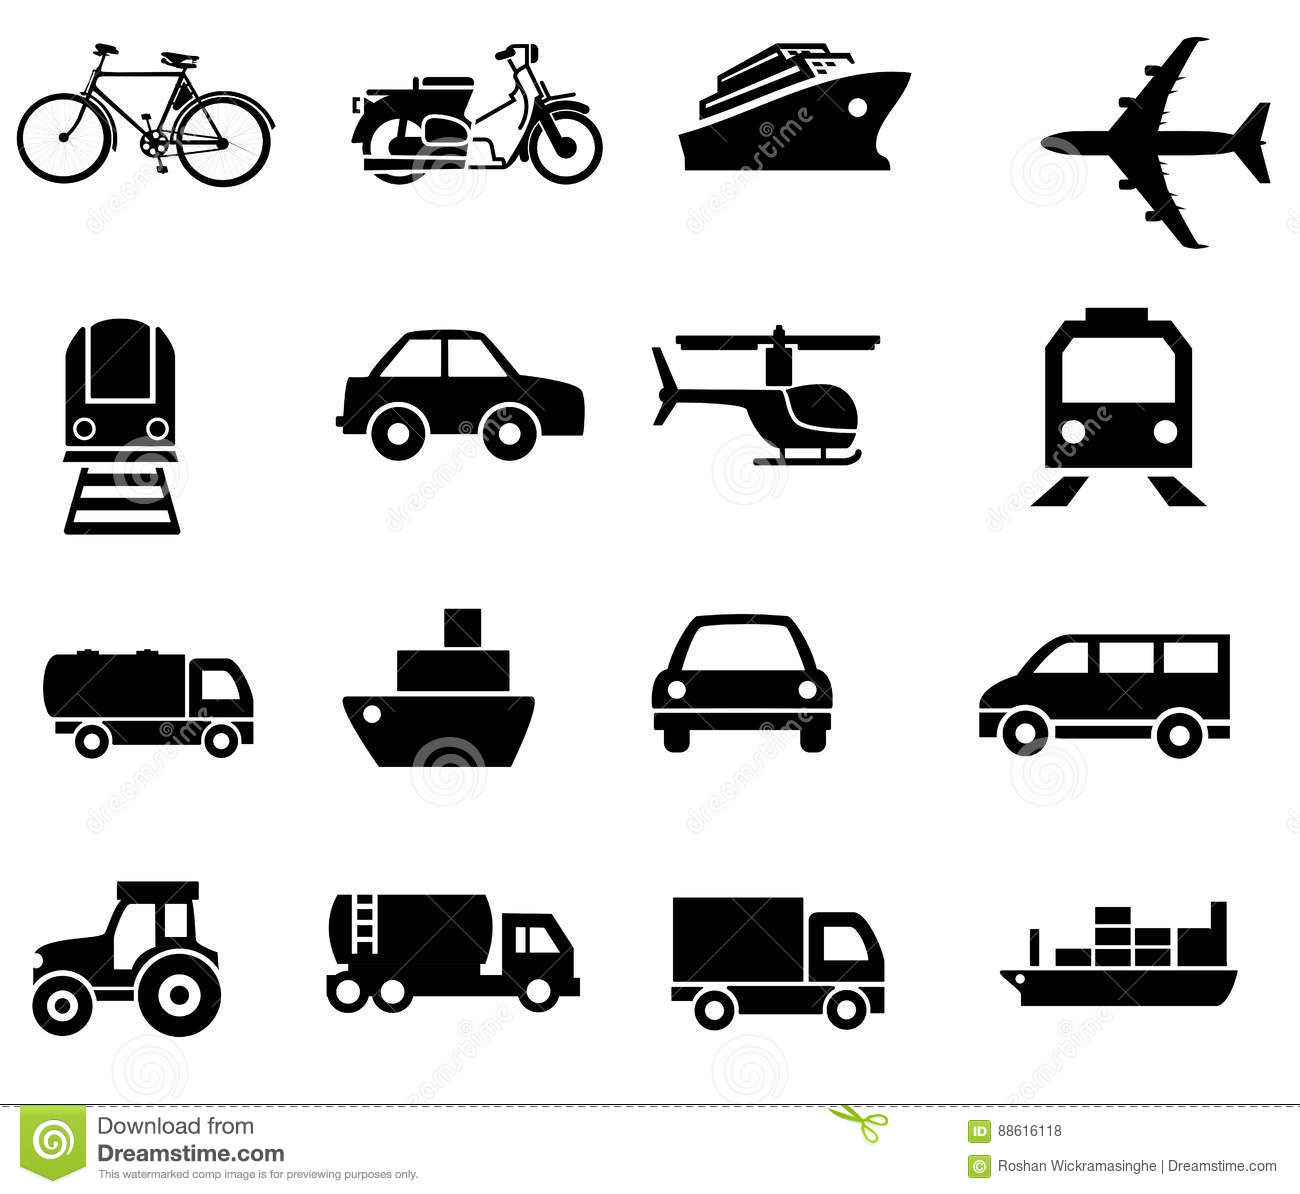 Vehicle transport sillhouetes simple clip arts